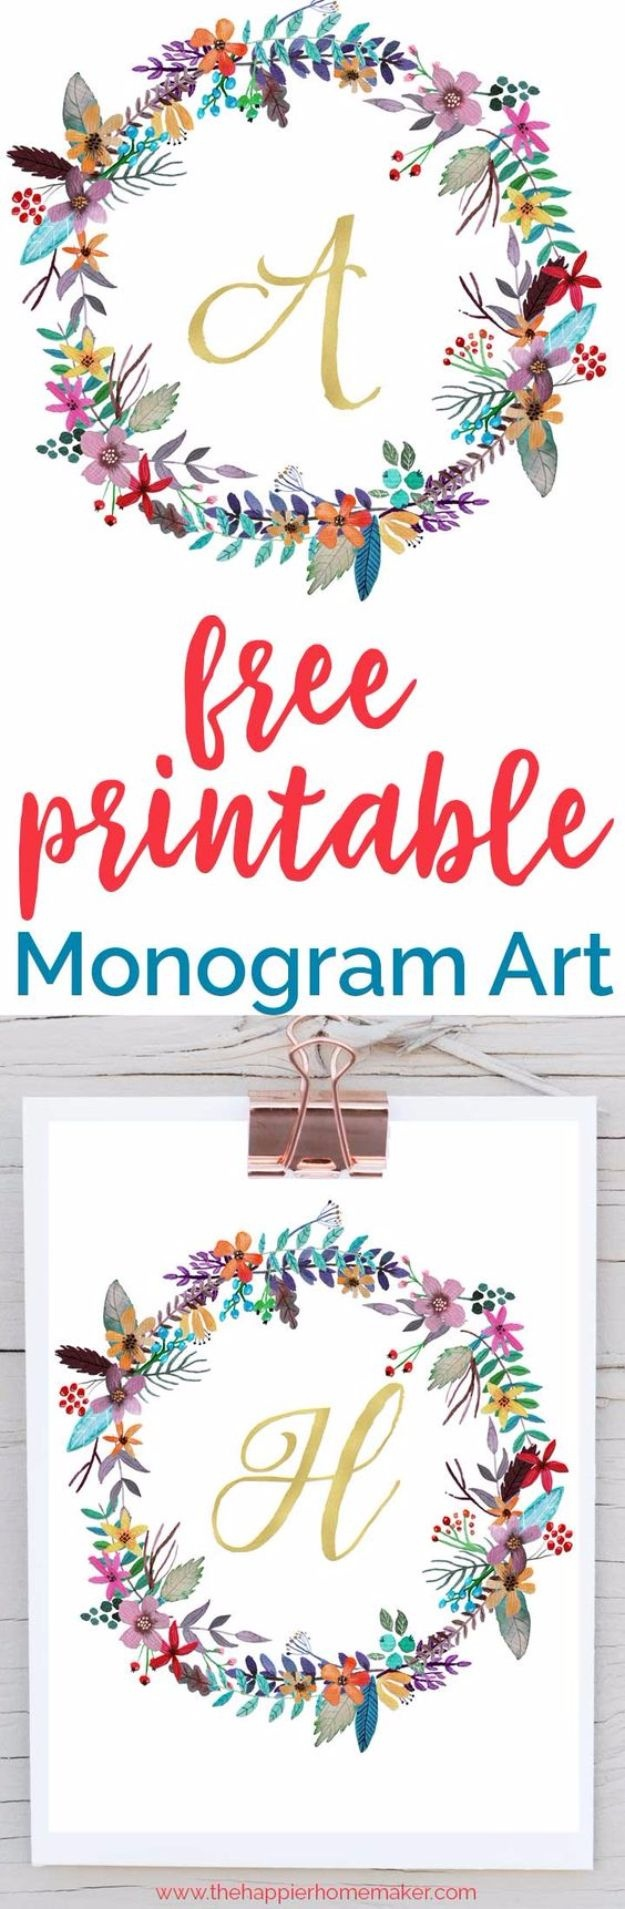 35 Best Free Printables For Your Walls - Free Printable Wall Decor